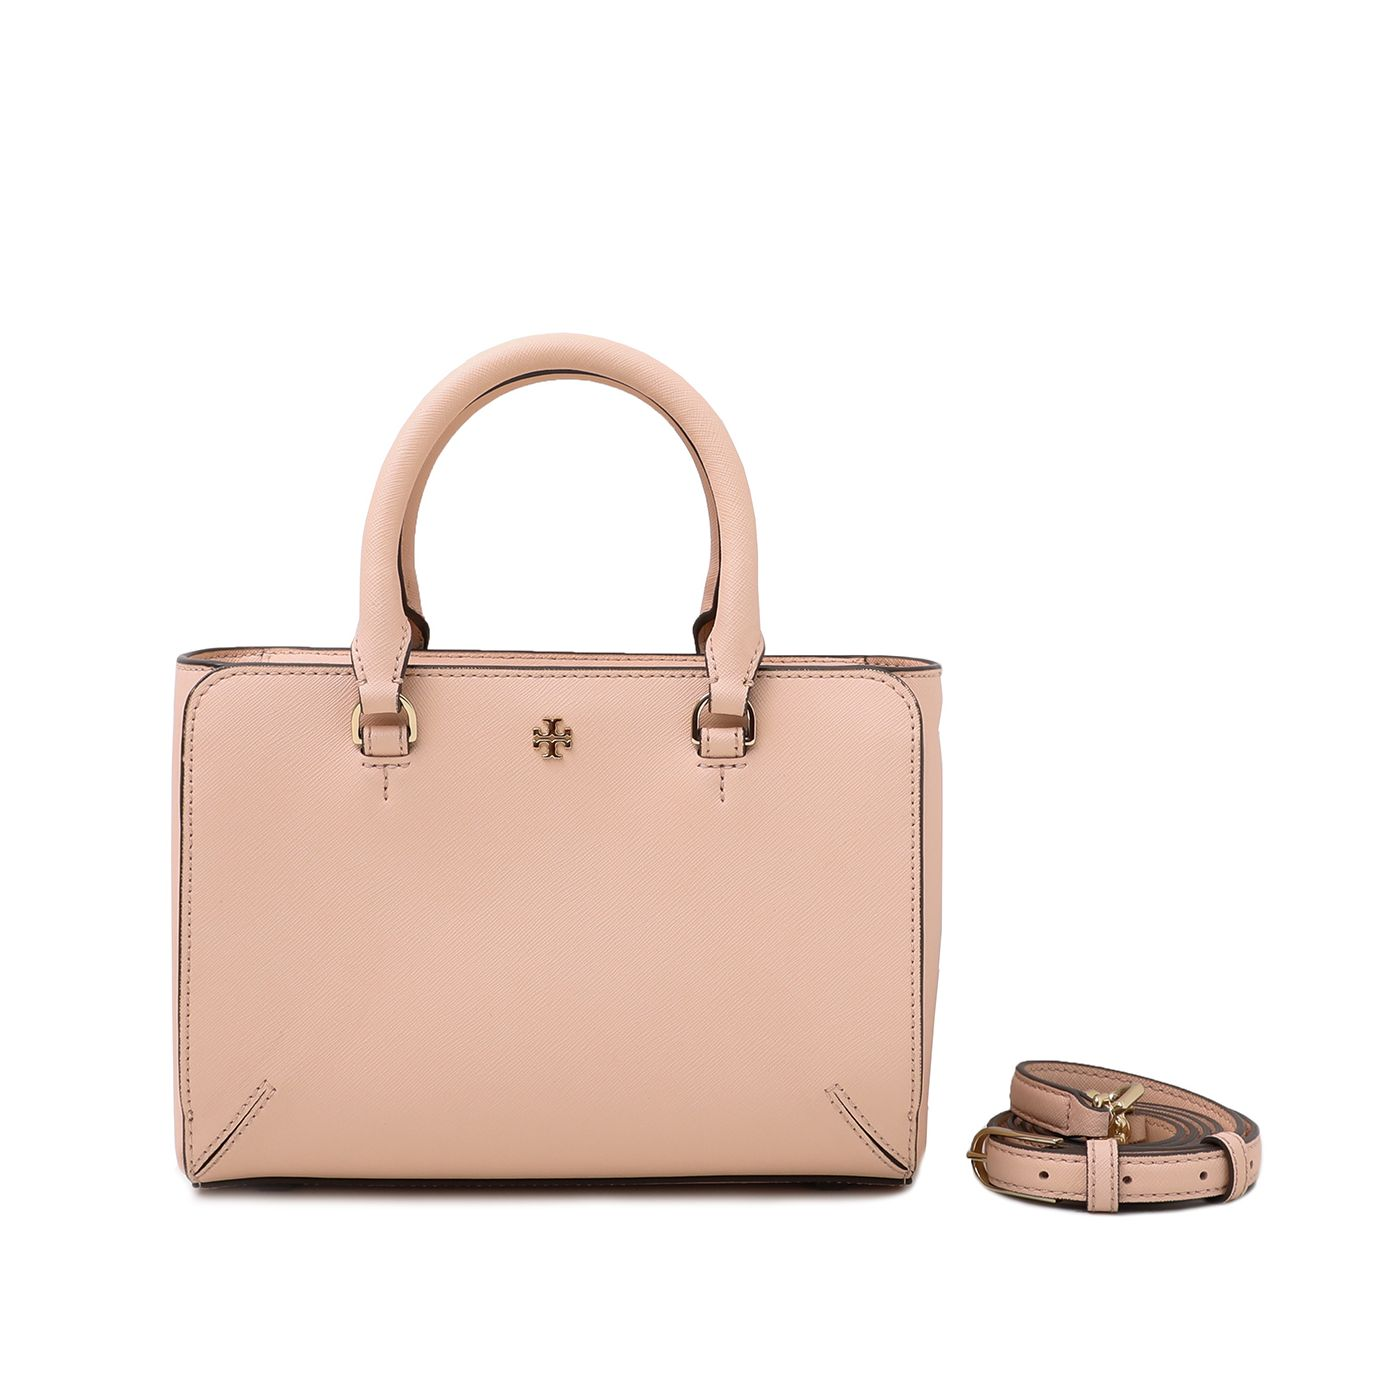 Tory burch Light Pink Robinson Micro Top Tote Bag